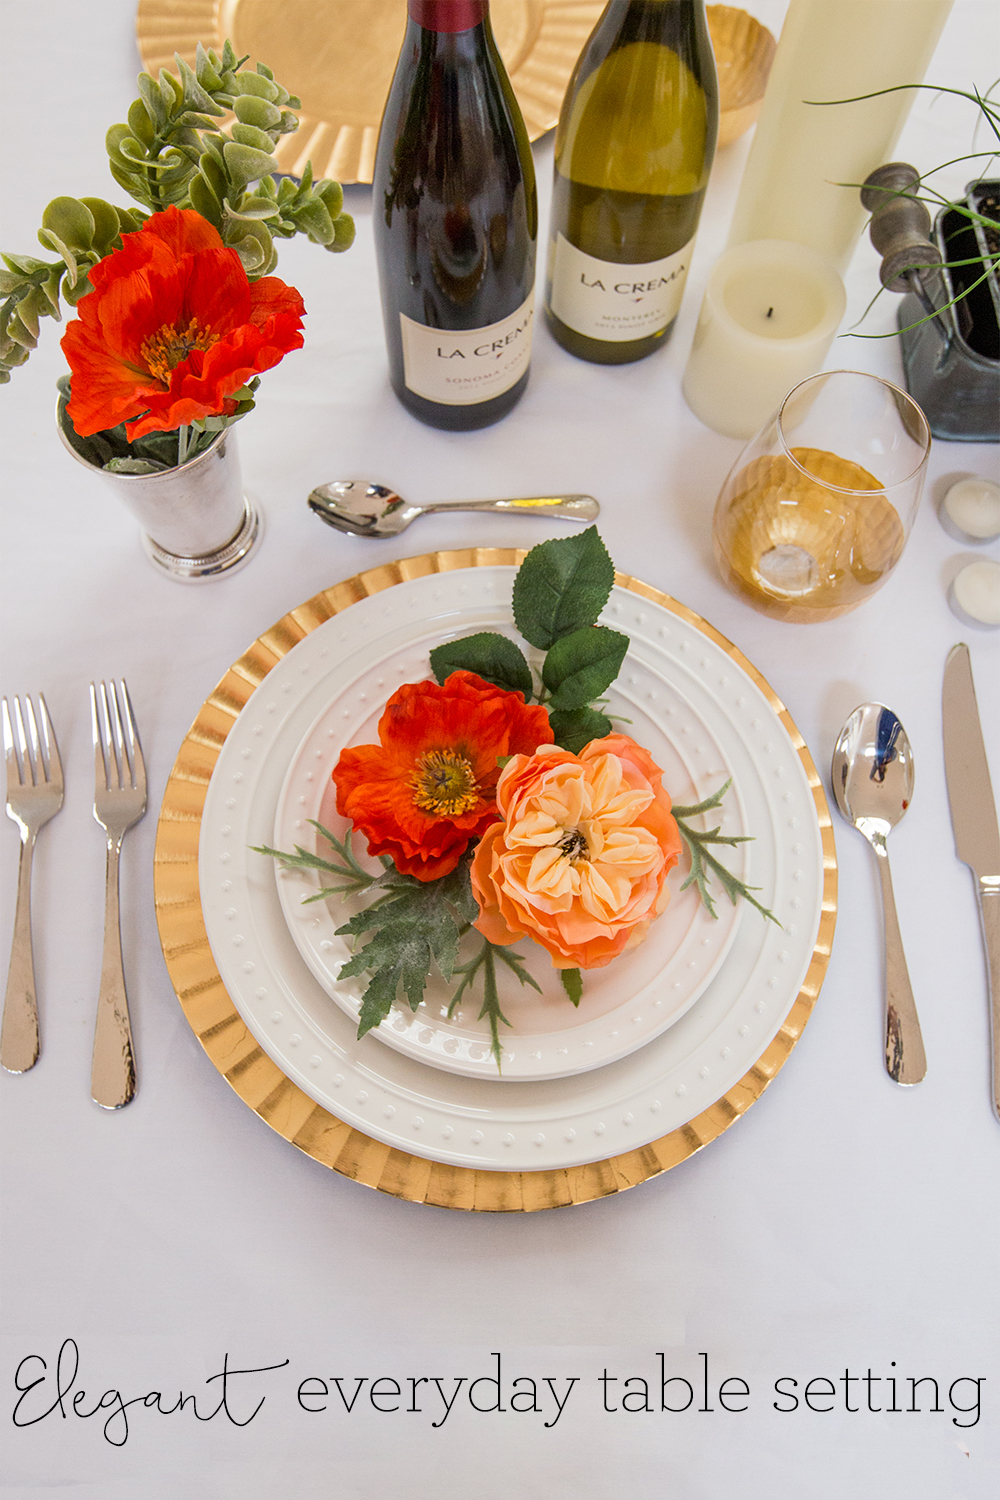 Elegant Everyday Table Setting | Freckled Italian & Tips for an Elegant Everyday Table Setting \u2014 Freckled Italian